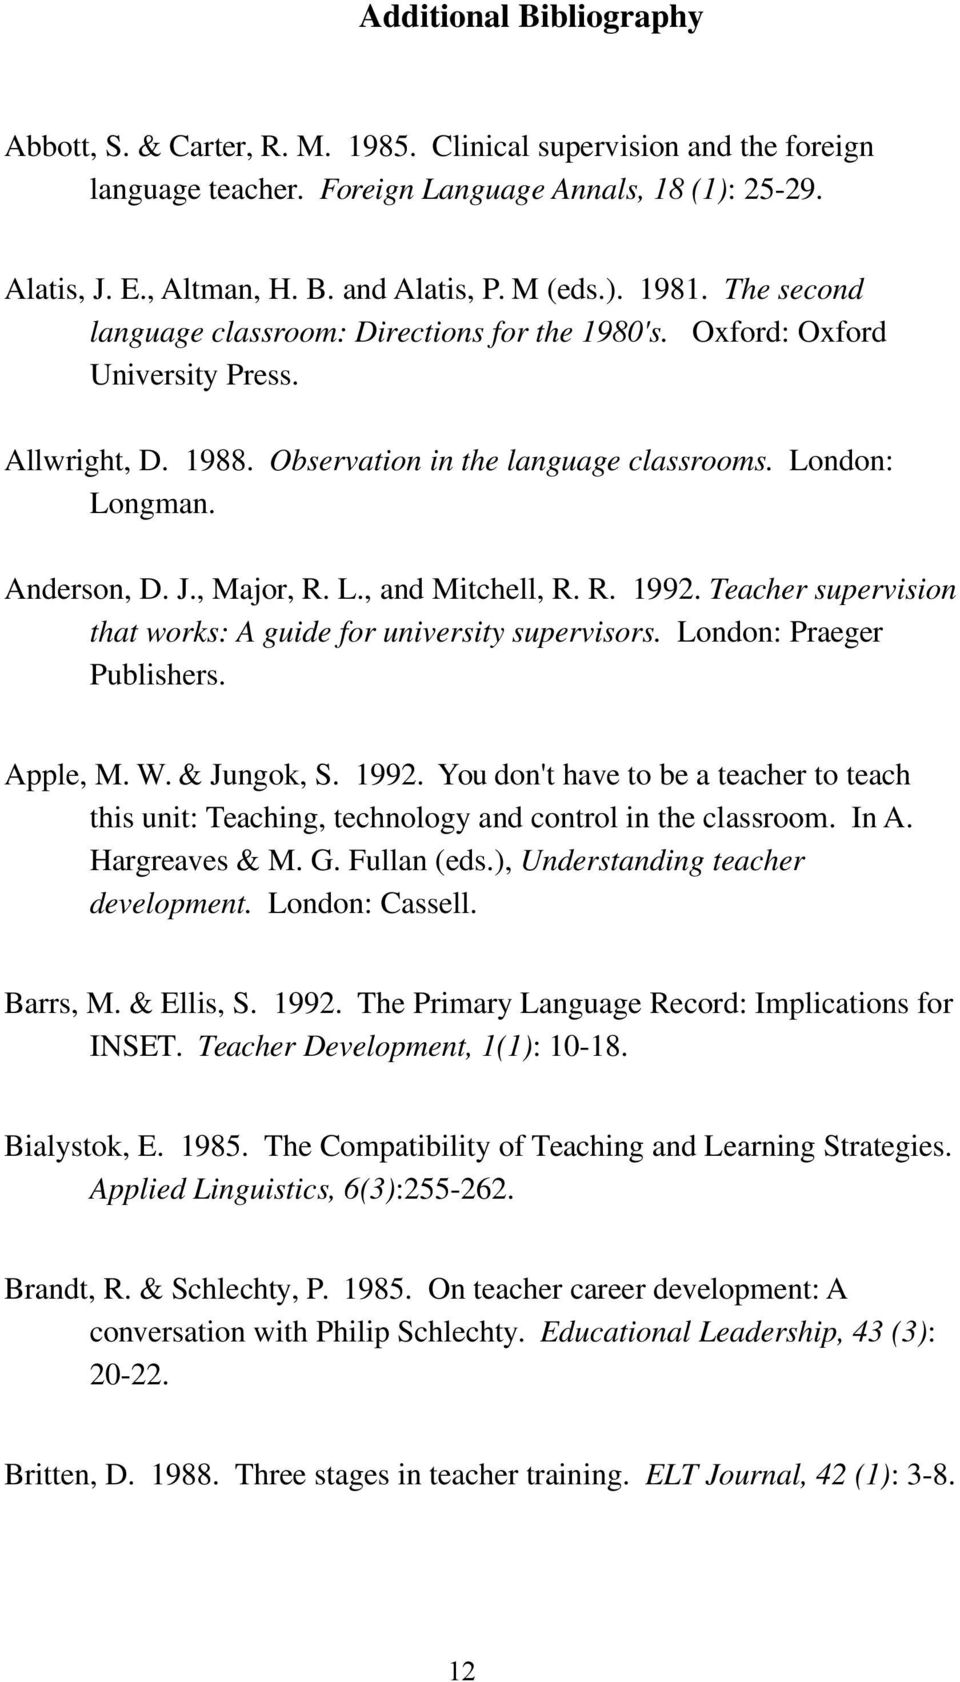 , Major, R. L., and Mitchell, R. R. 1992. Teacher supervision that works: A guide for university supervisors. London: Praeger Publishers. Apple, M. W. & Jungok, S. 1992. You don't have to be a teacher to teach this unit: Teaching, technology and control in the classroom.